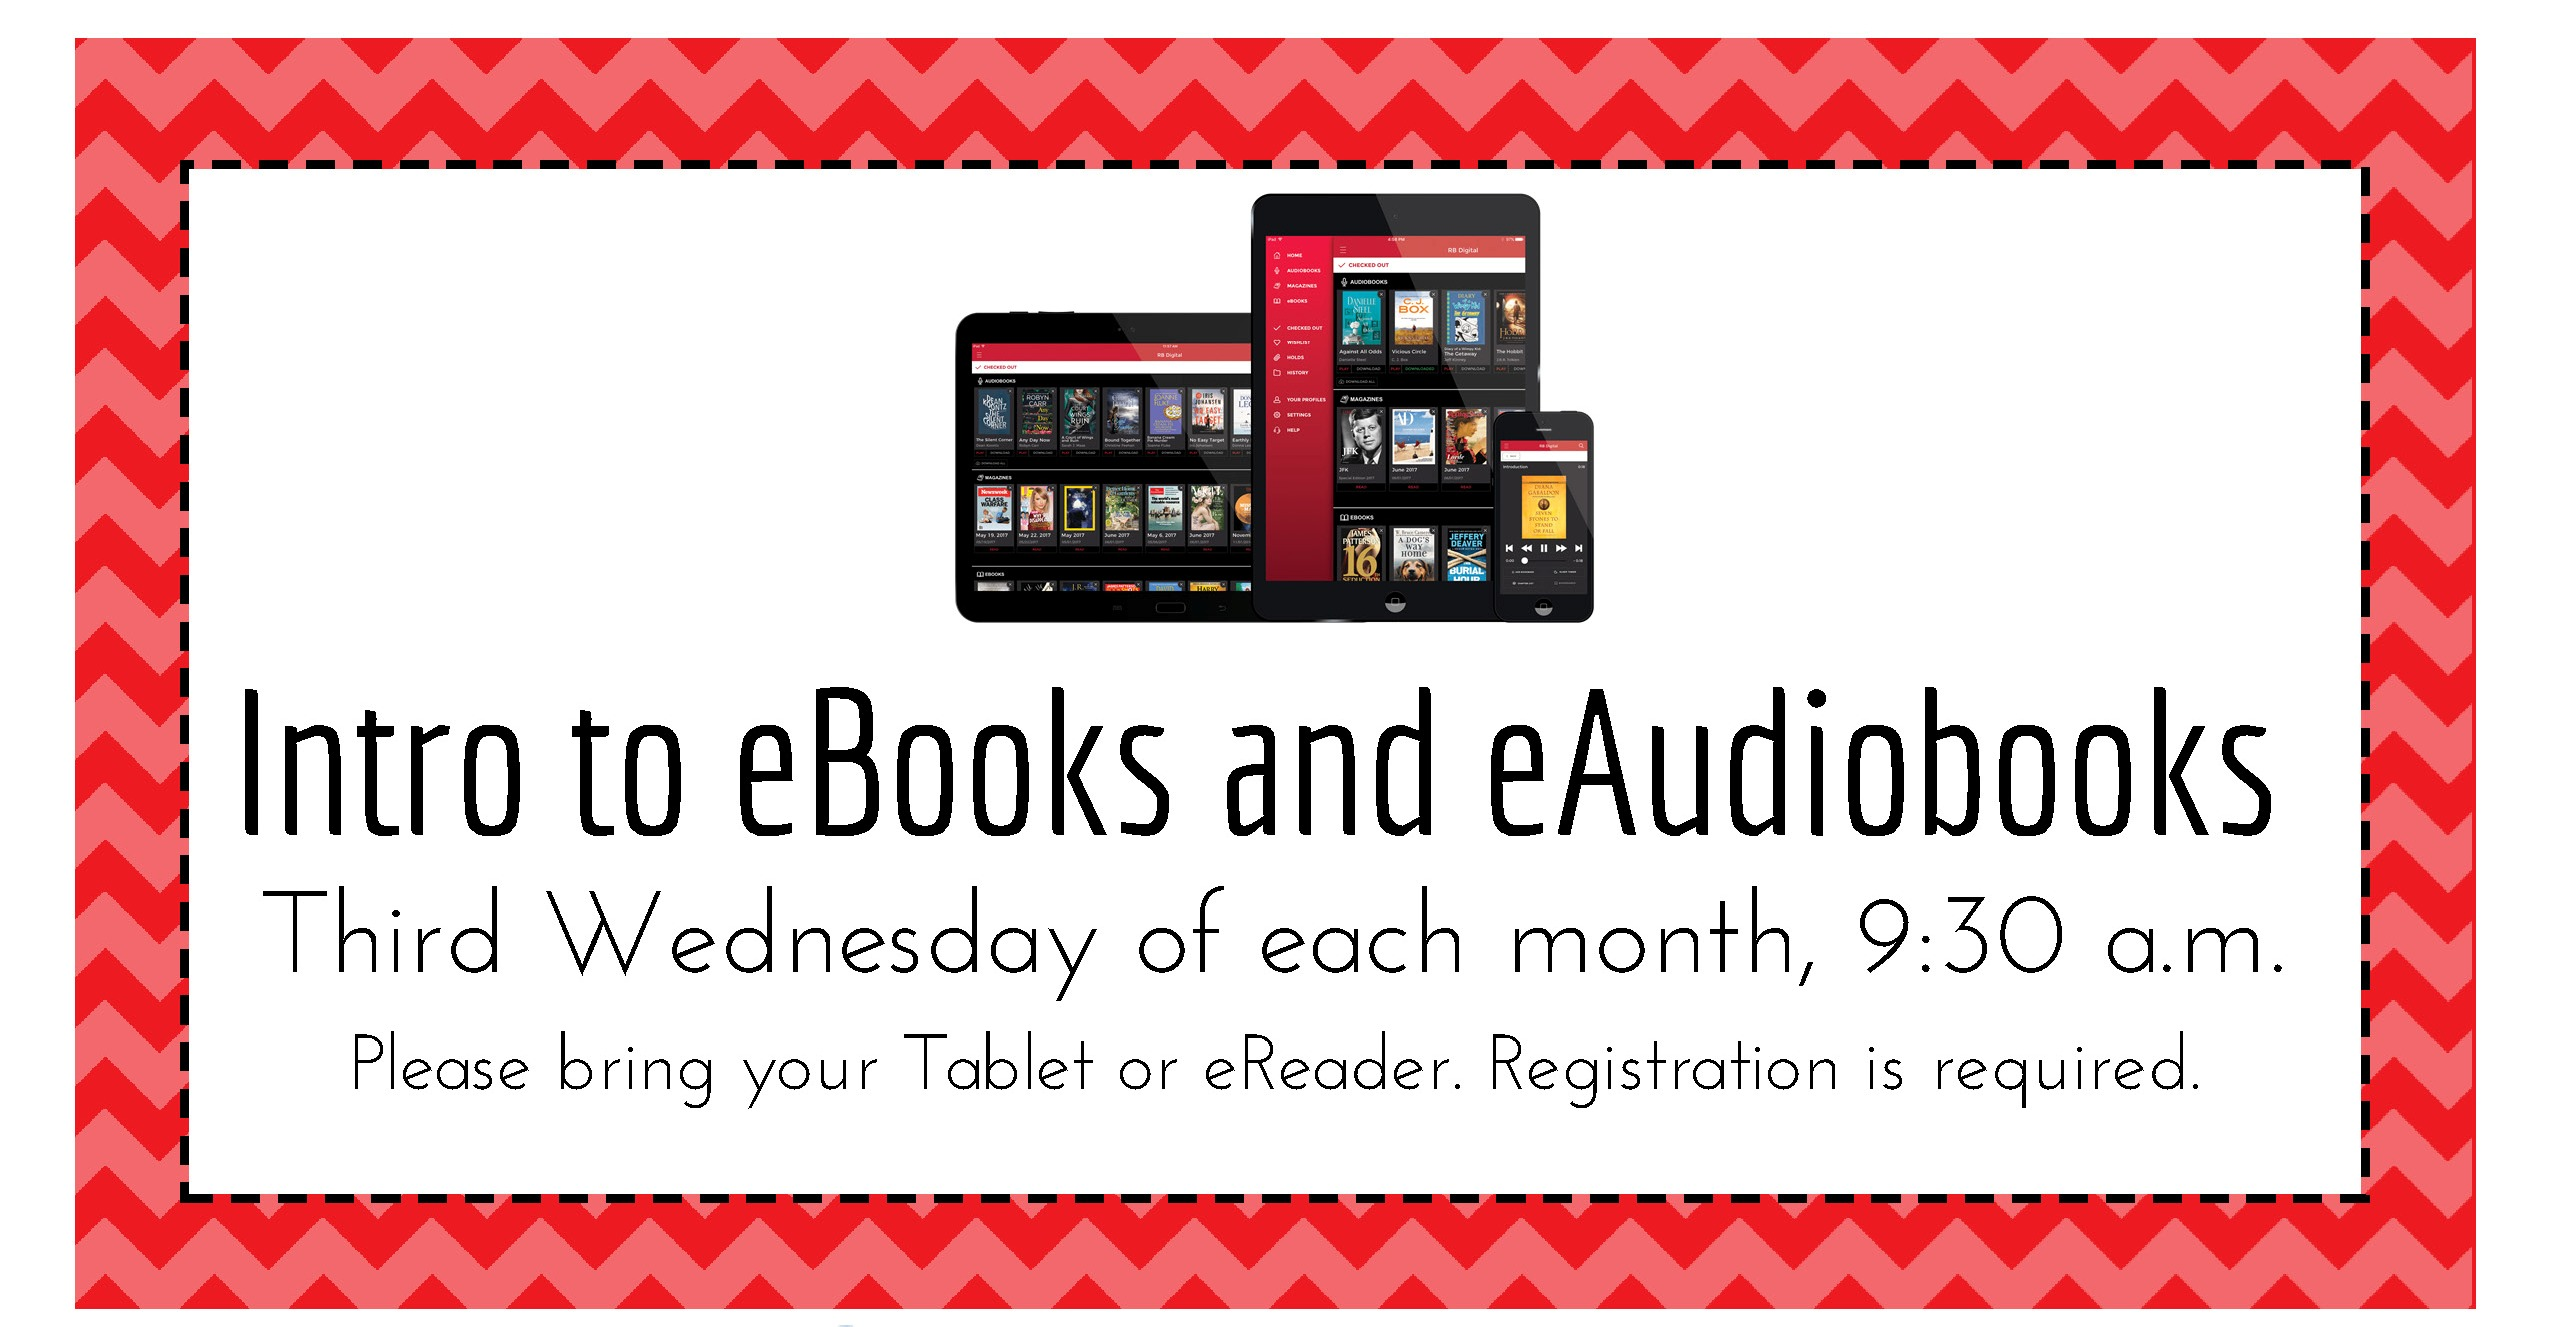 INTRO TO eBOOKS AND eAUDIOBOOKS THIRD WEDNESDAY AT 9:30